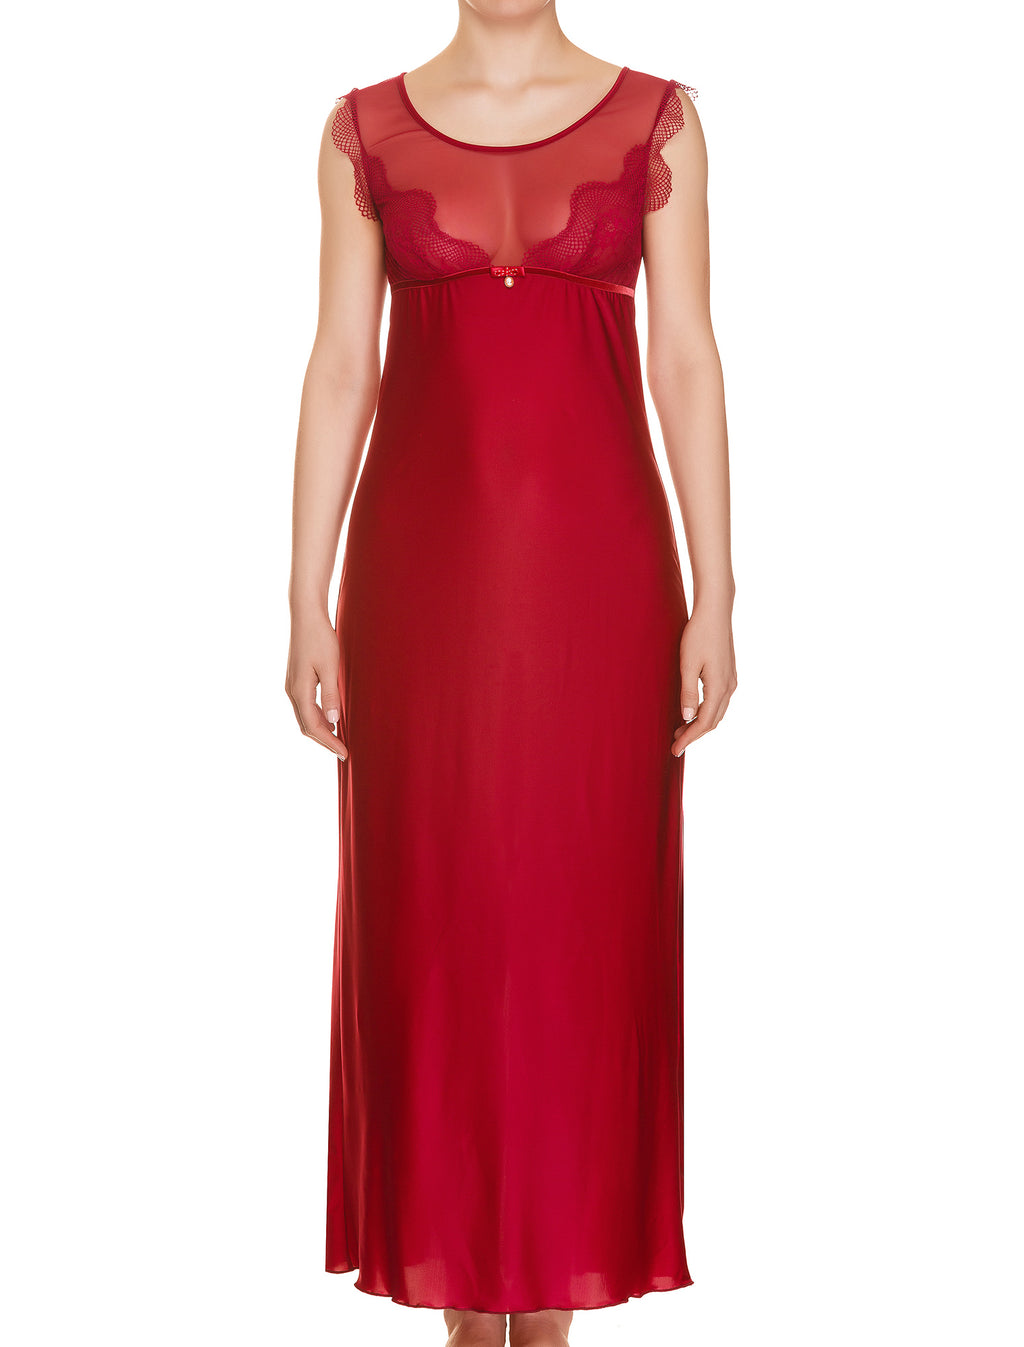 Lauma, Red Long Night Dress, On Model Front, 41H90